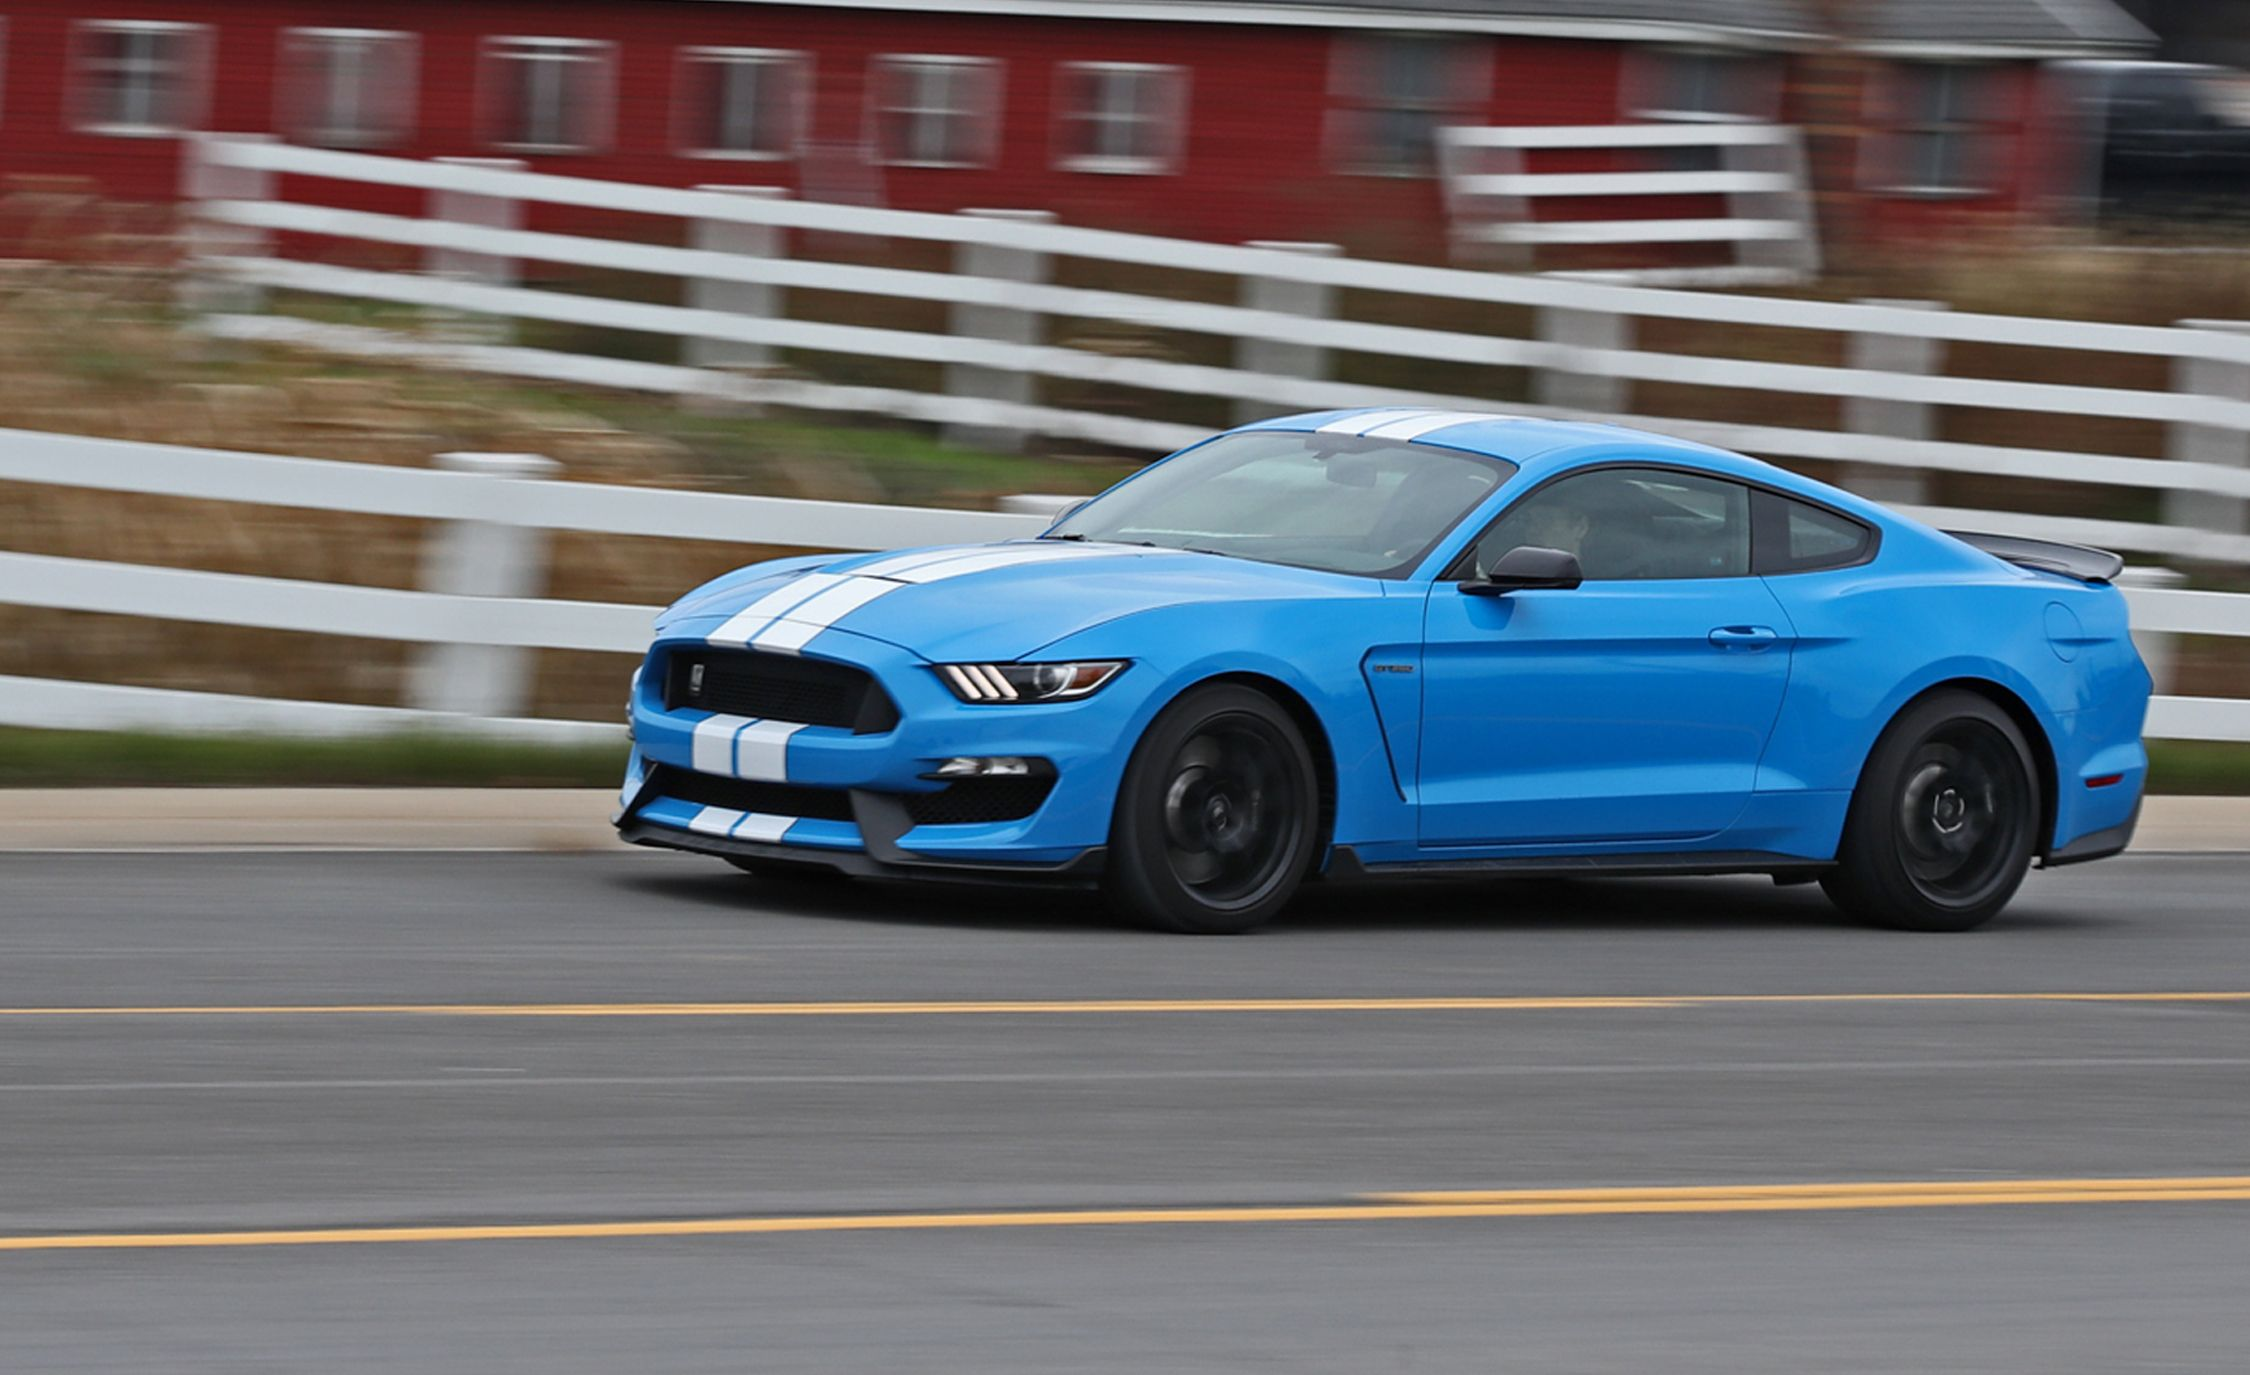 2017 ford mustang gt350 20000 mile update appetites of a horse review car and driver